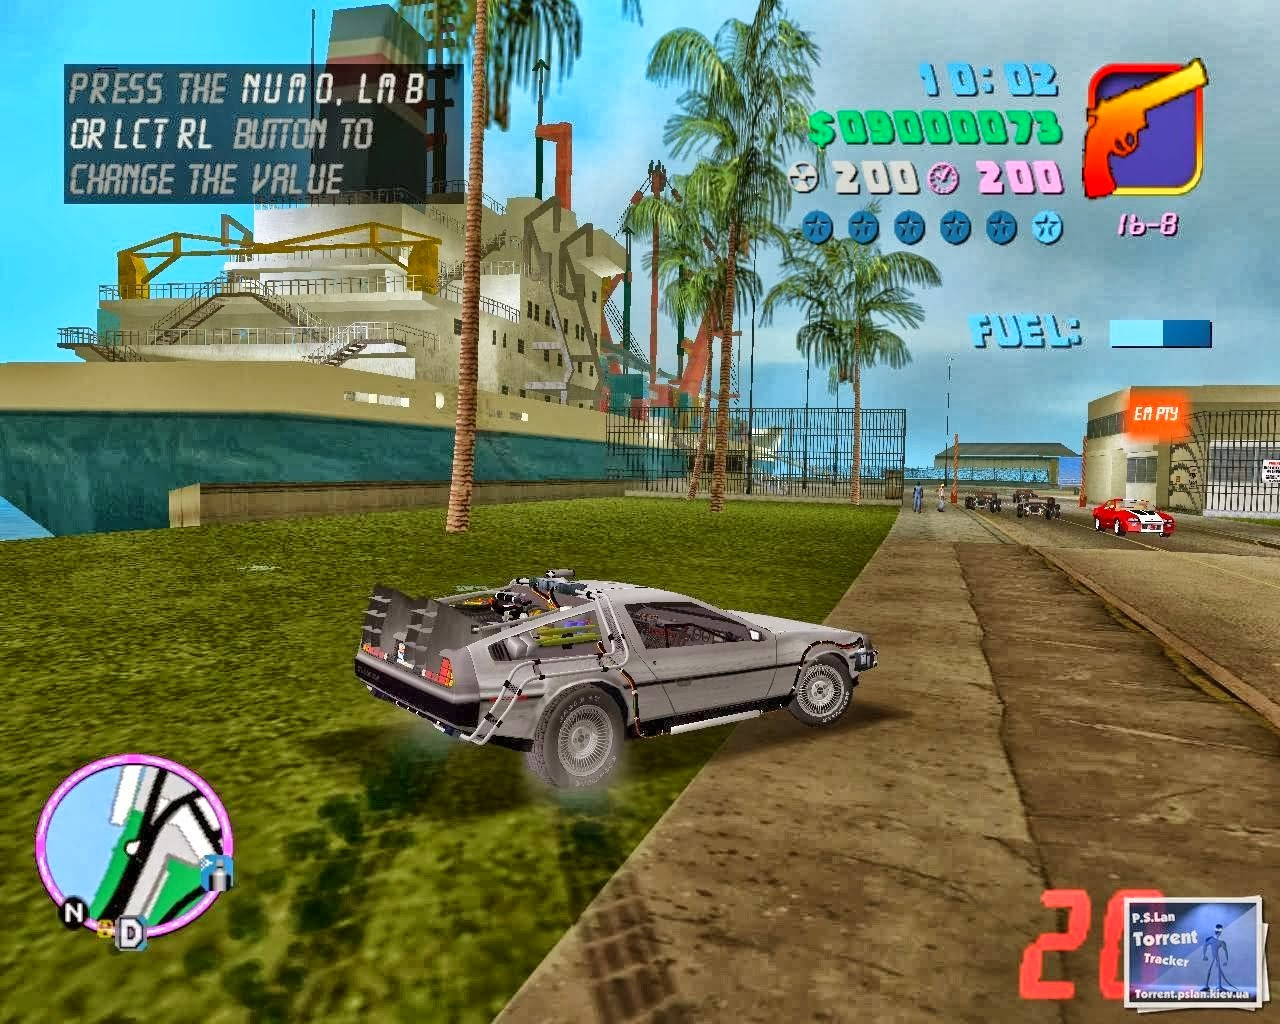 Download gta games - Softonic - App news and reviews, best